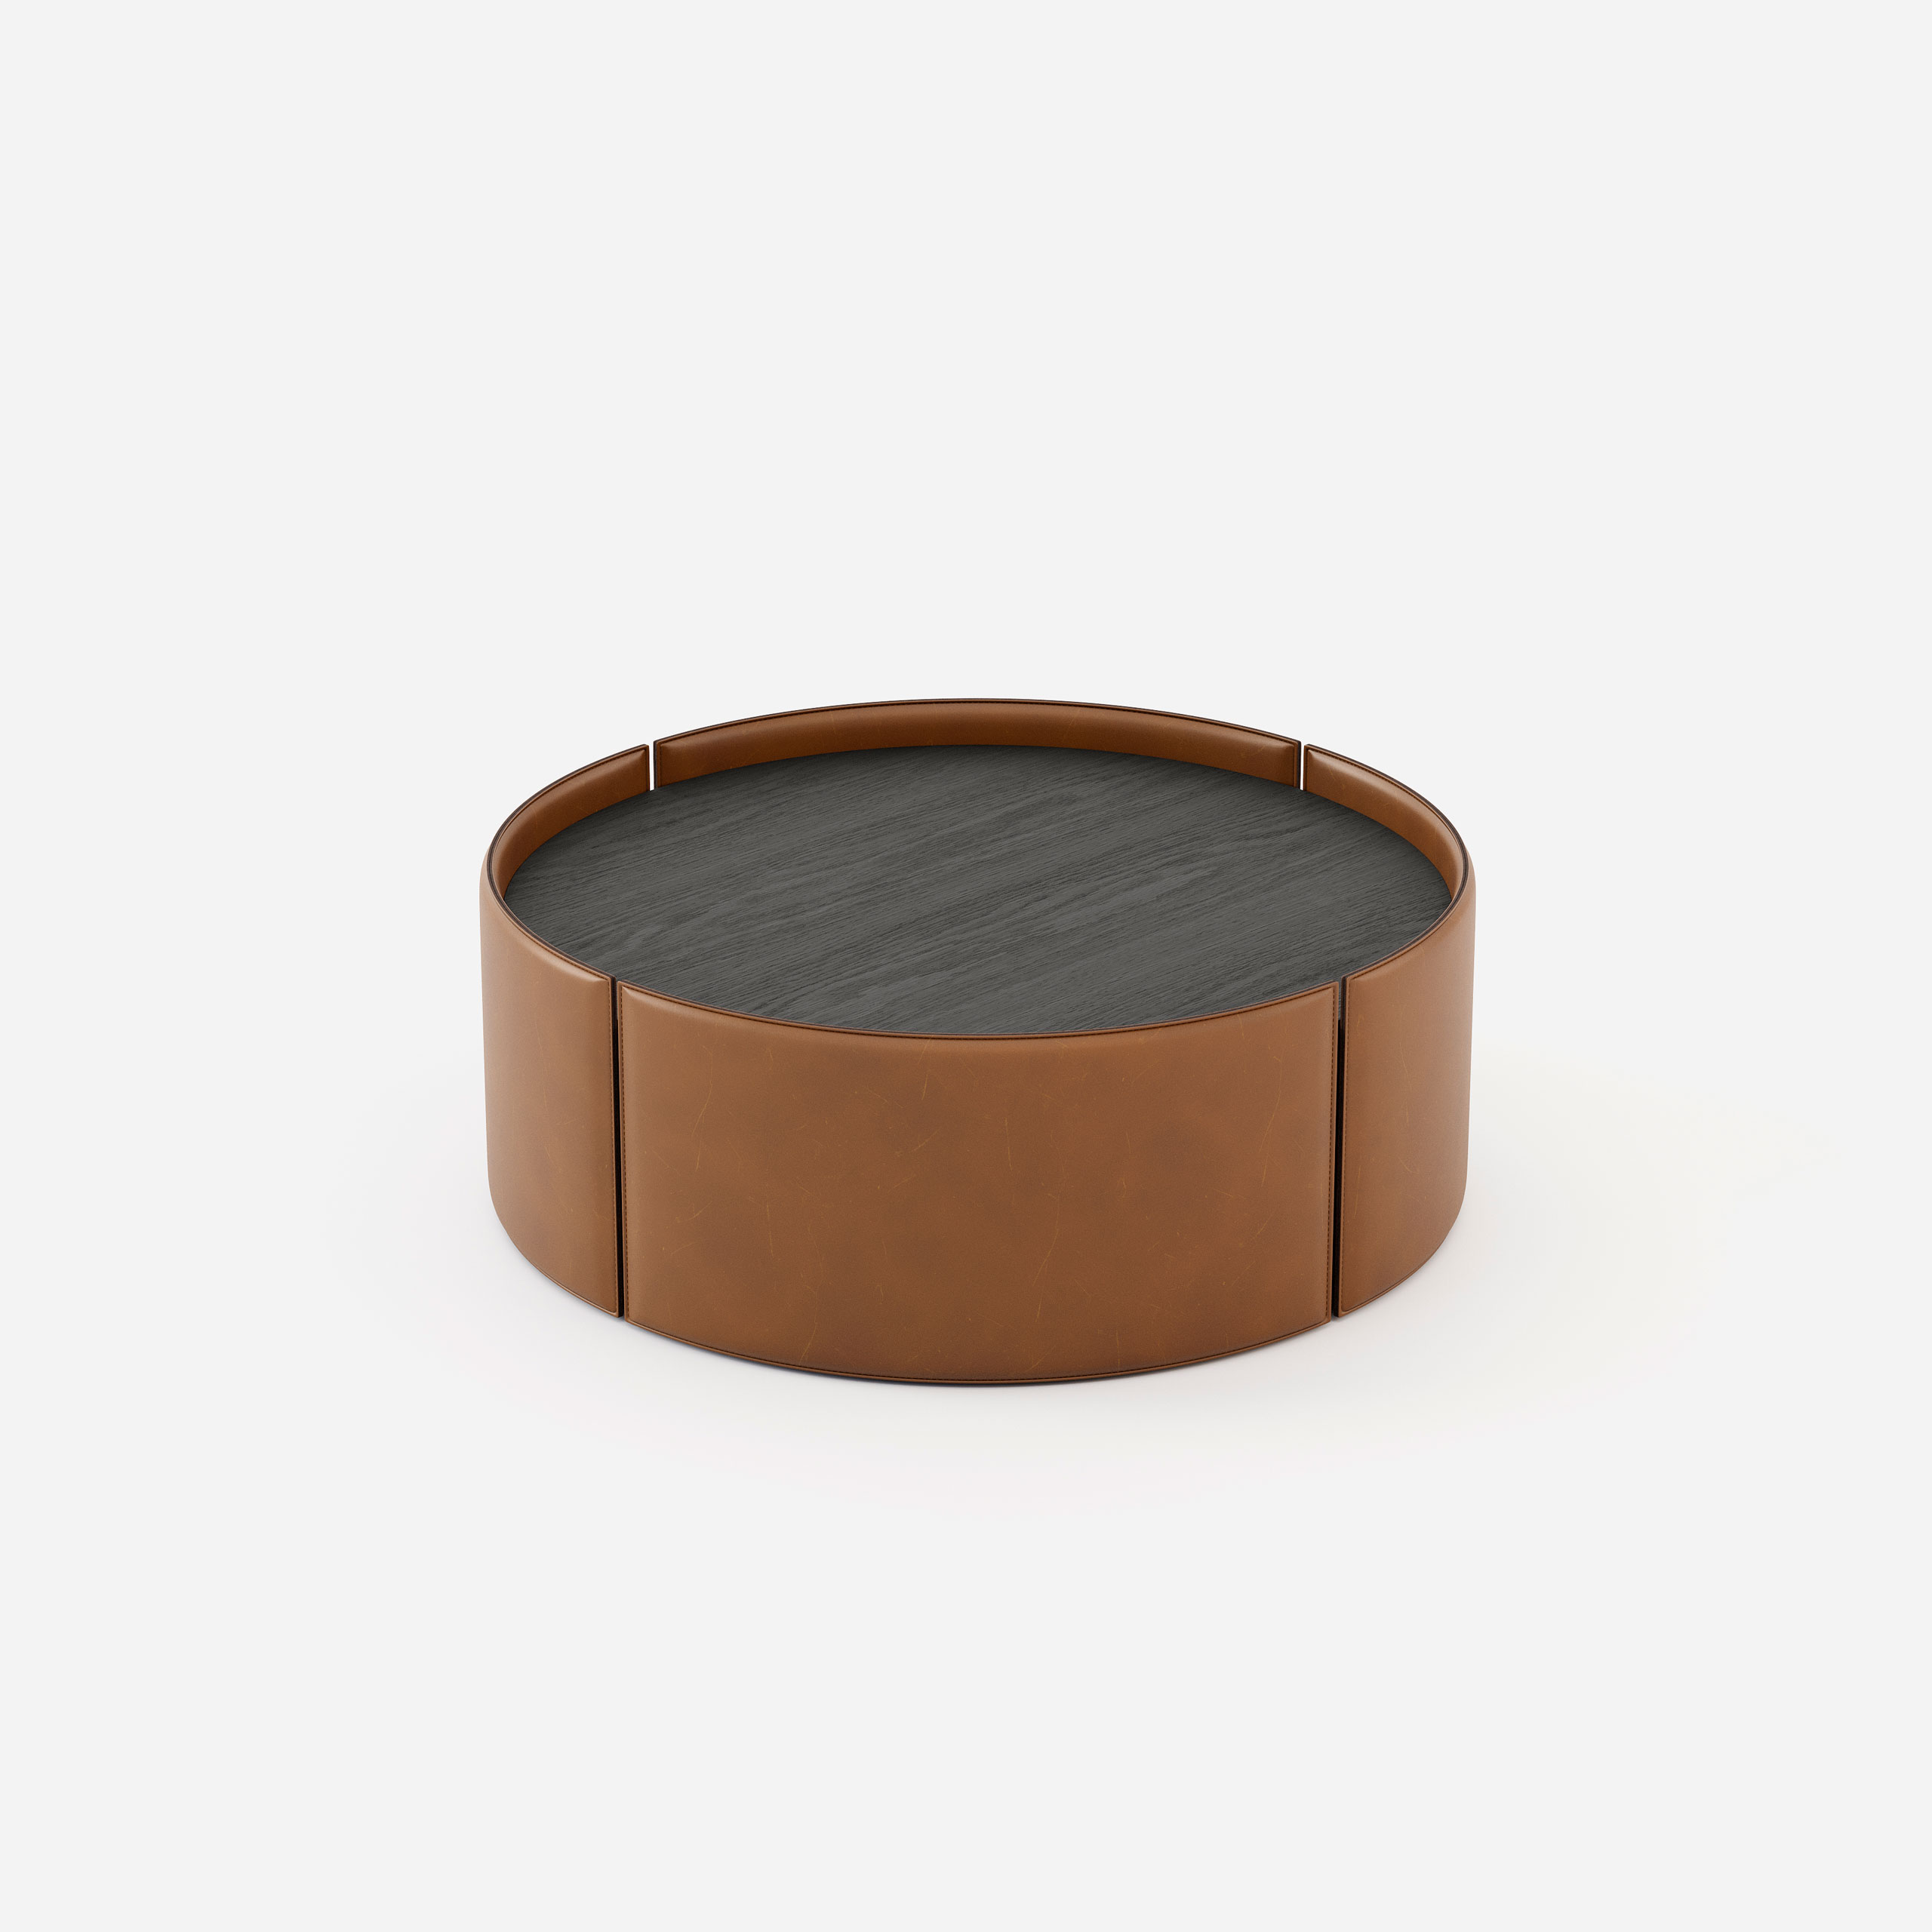 mano-coffee-table-natural-leather-new-collection-domkapa-2